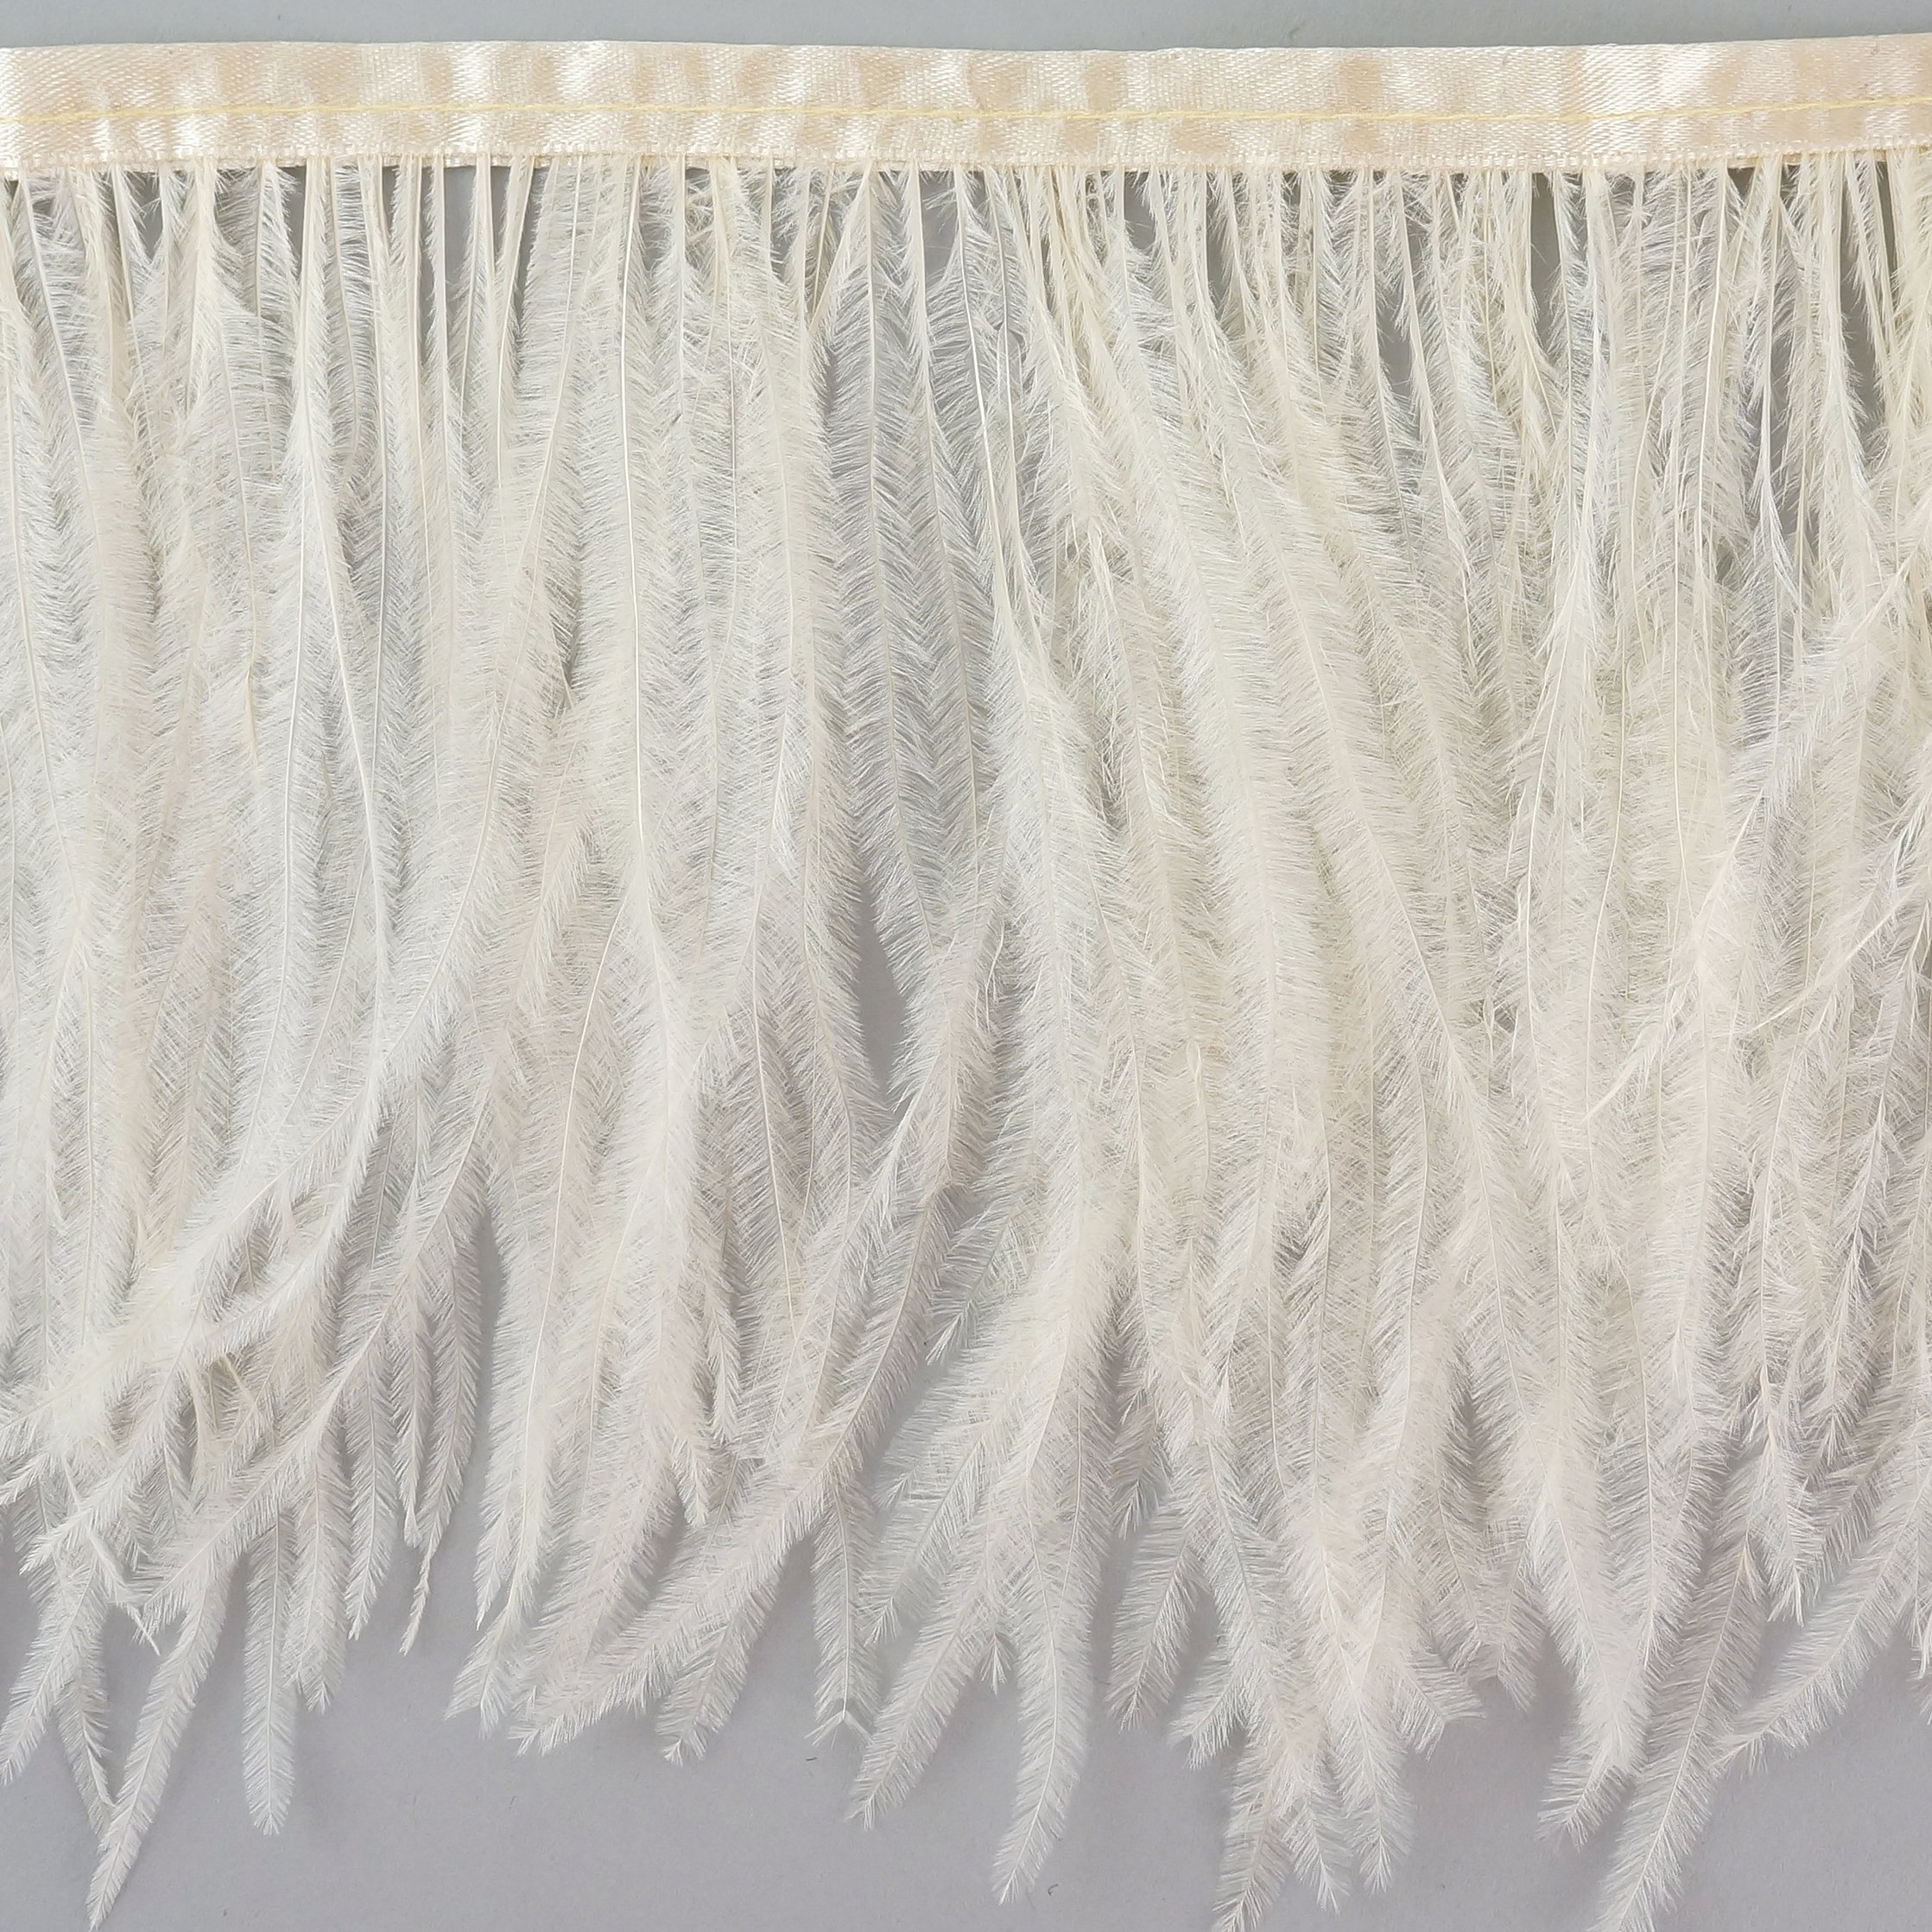 Ostrich Feather Fringe 1PLY French Vanilla by ZUCKERTM